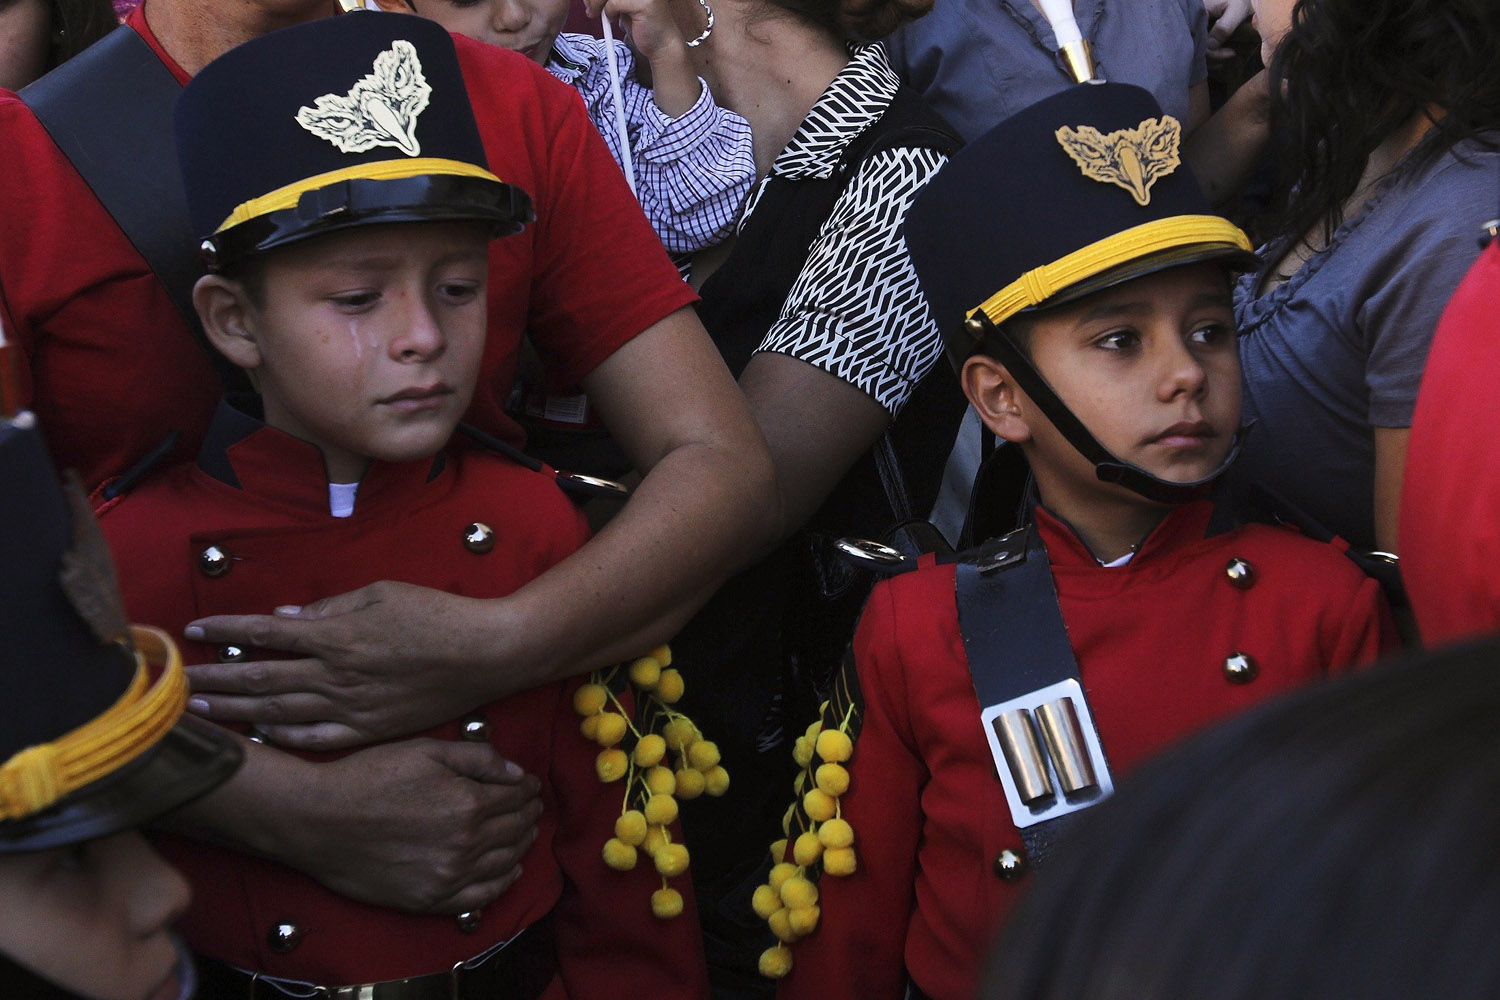 Oct. 7, 2013. A young musician cries after a mass for a 12-year-old boy and his father, victims of a monster truck accident, at a church in Chihuahua, Mexico.